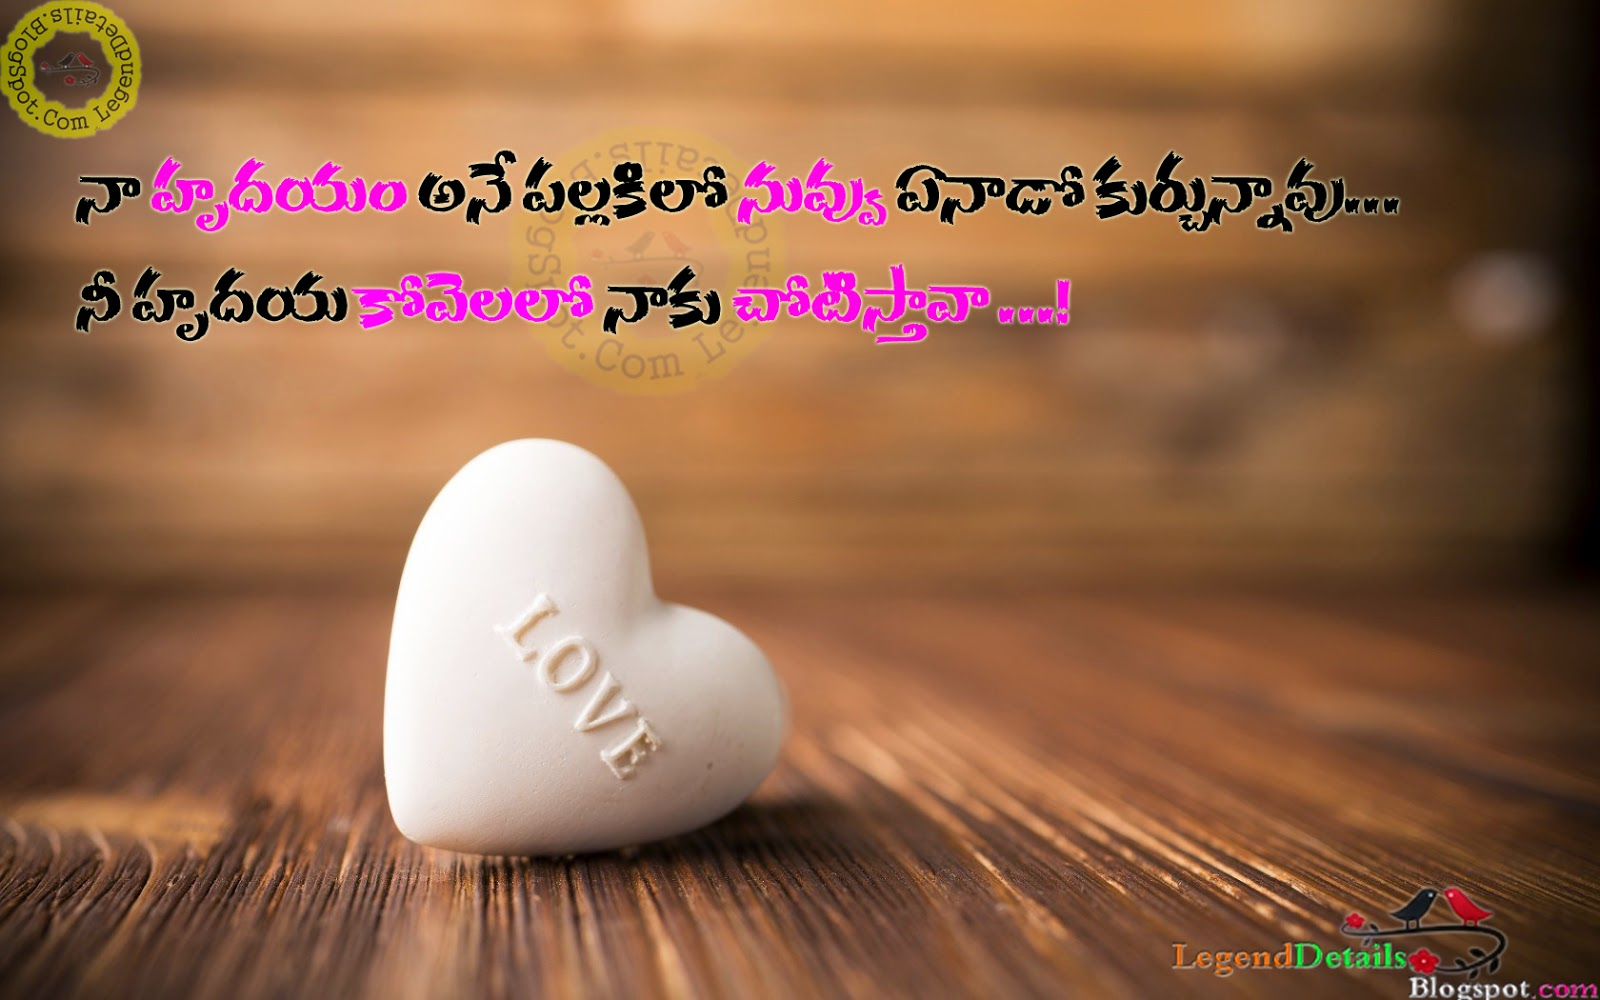 Telugu Love Quotes New Telugu Love Sms With Hd Images  Heart Touching Telugu Love Sms